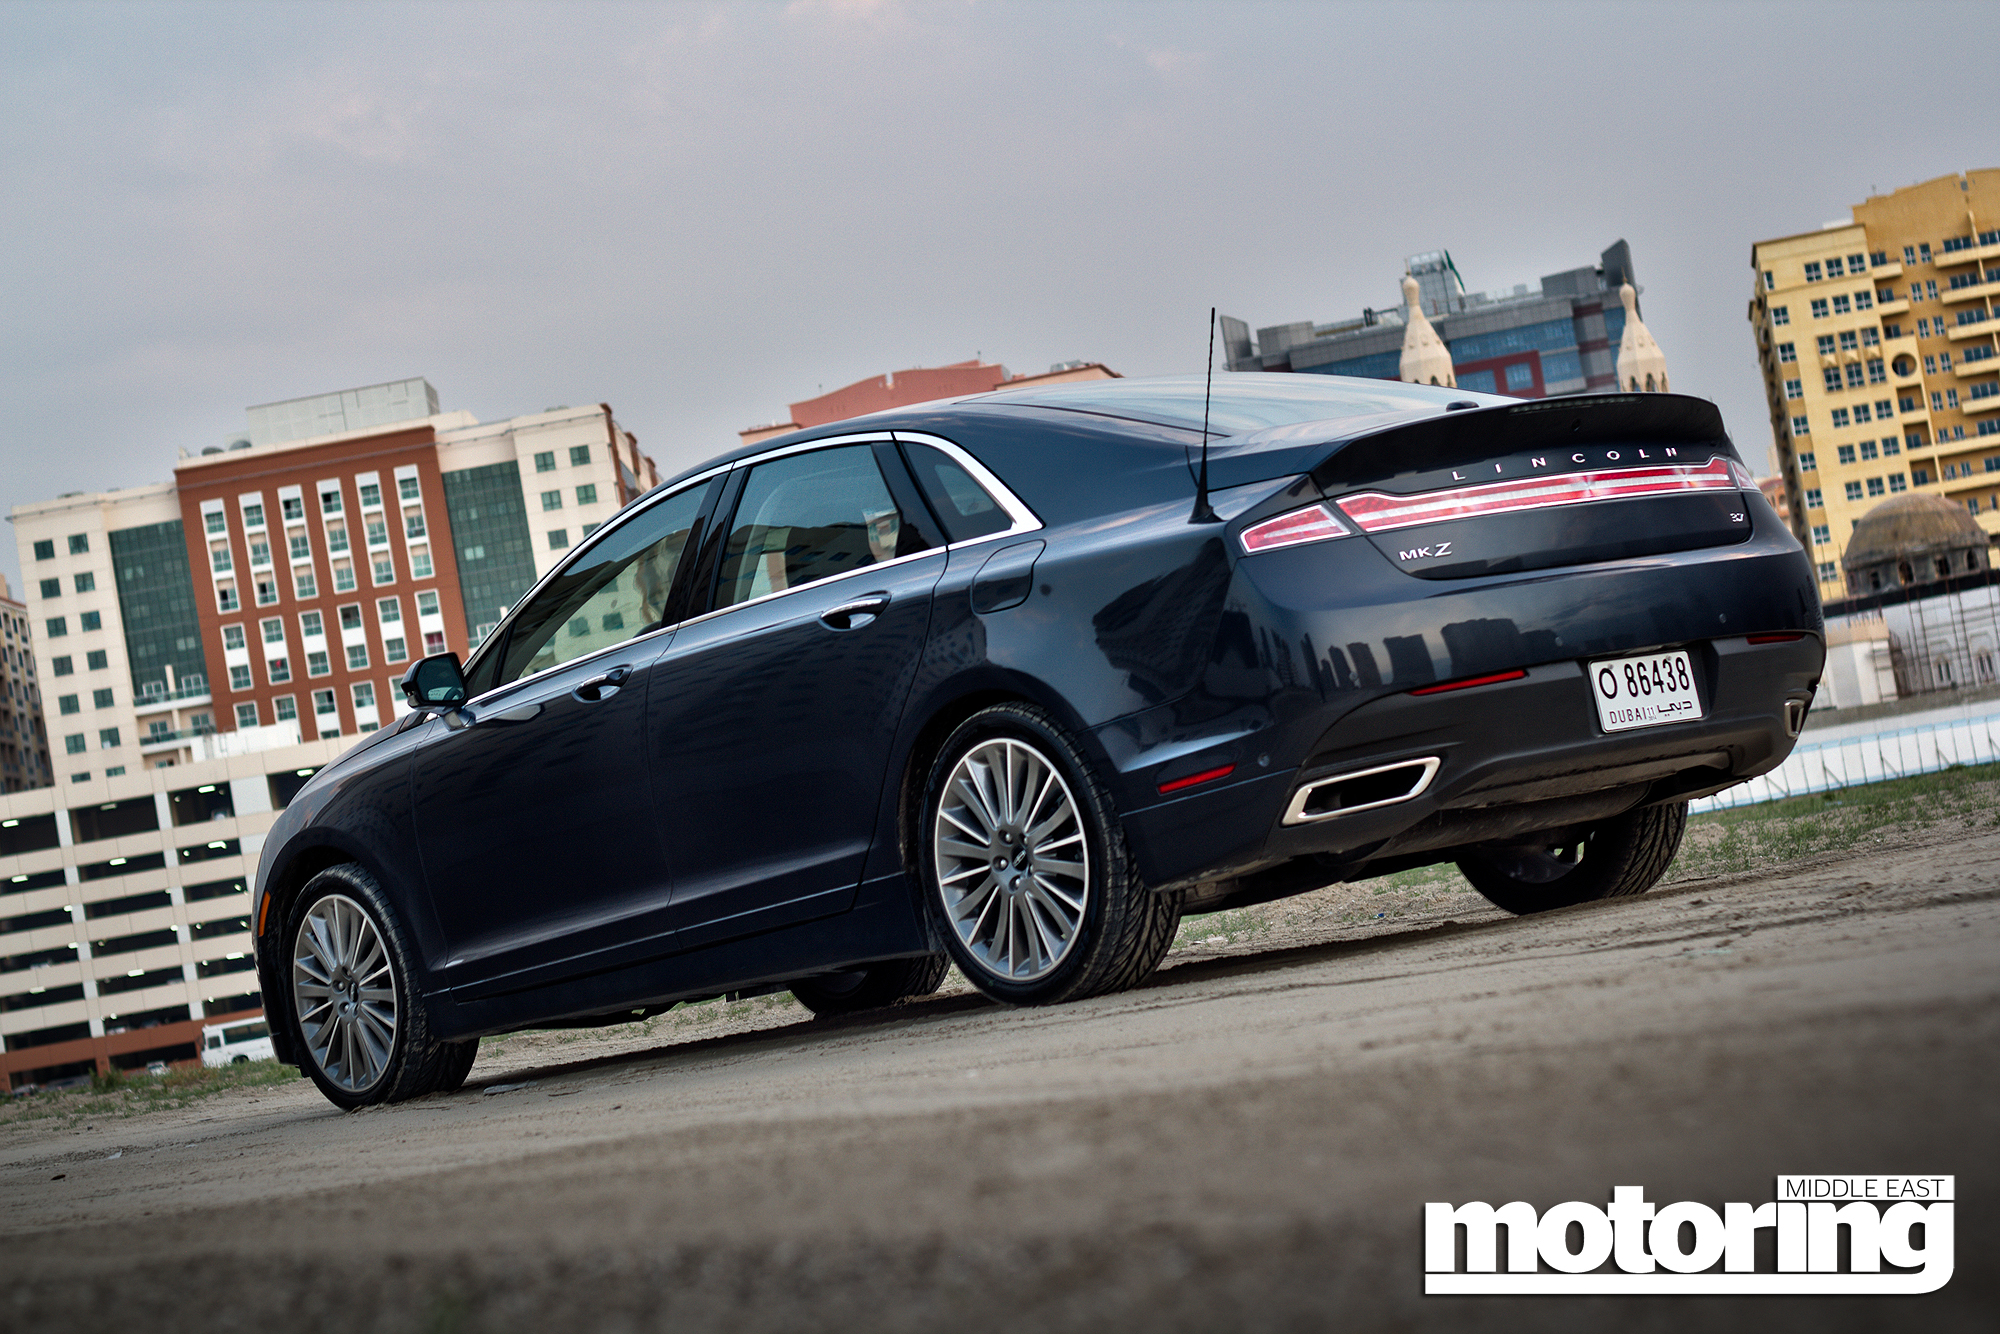 motoring img car lincoln mkz reviews news hdr review middle east